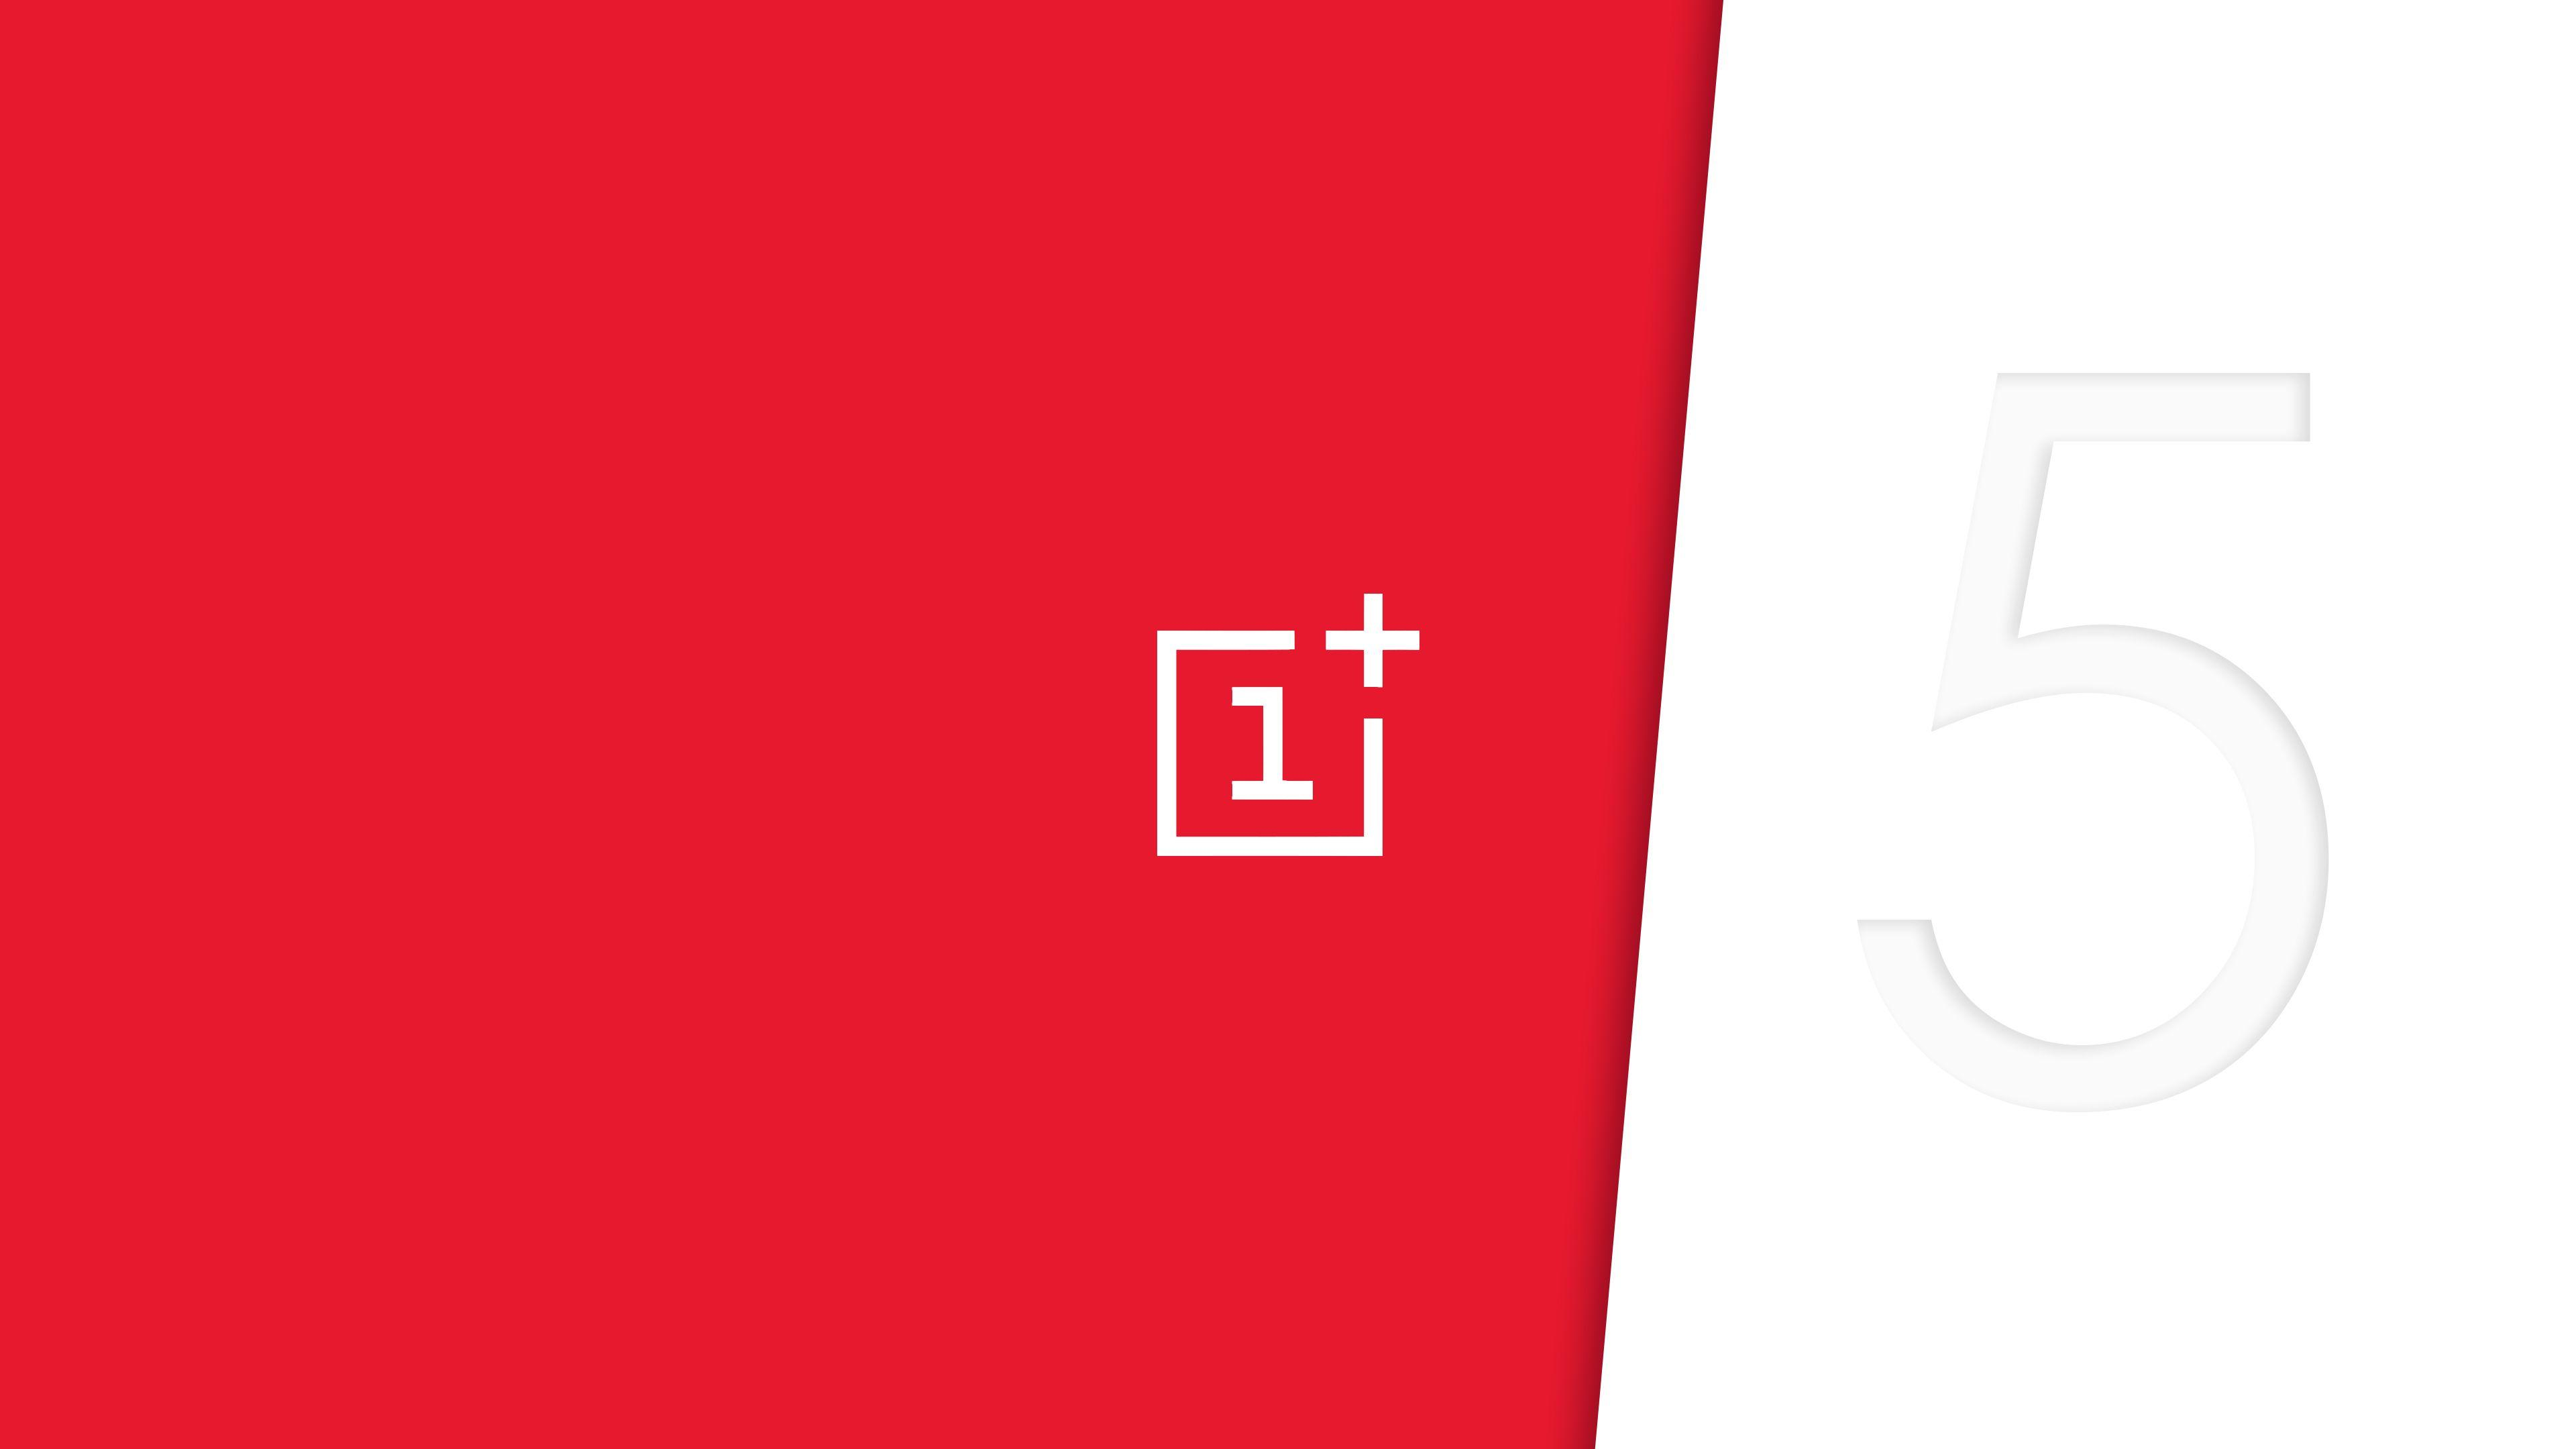 Wallpapers : oneplus, oneplus3, Android Marshmallow, red, oneplus5